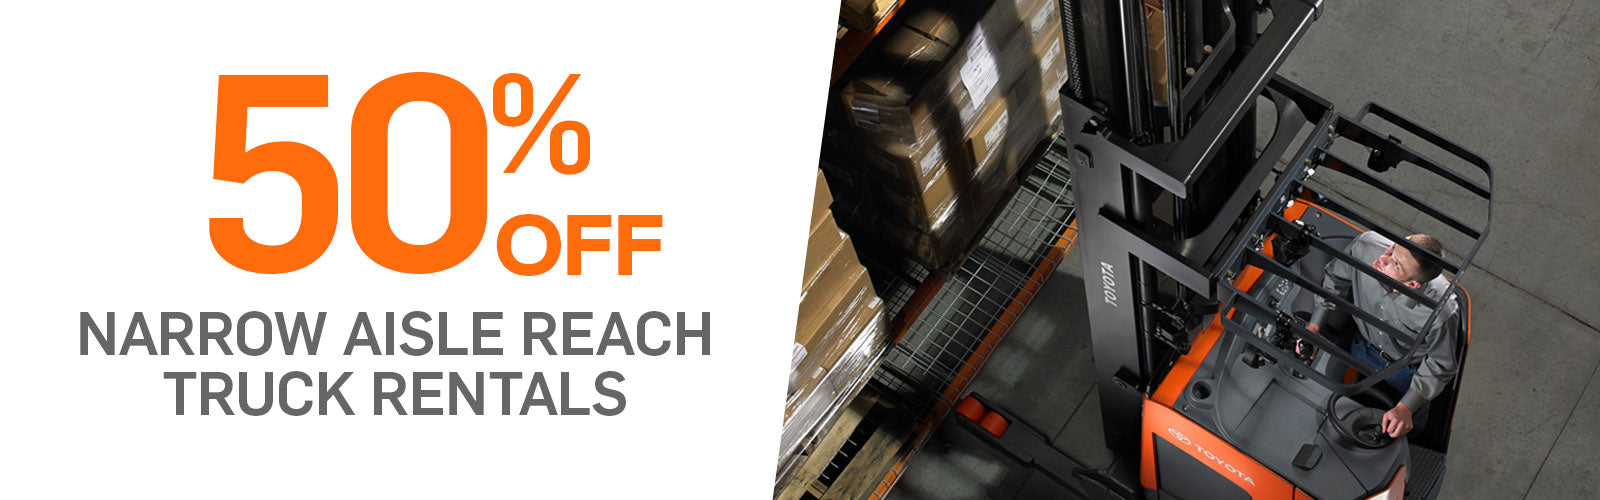 Narrow Aisle Reach Truck Rental Promotion